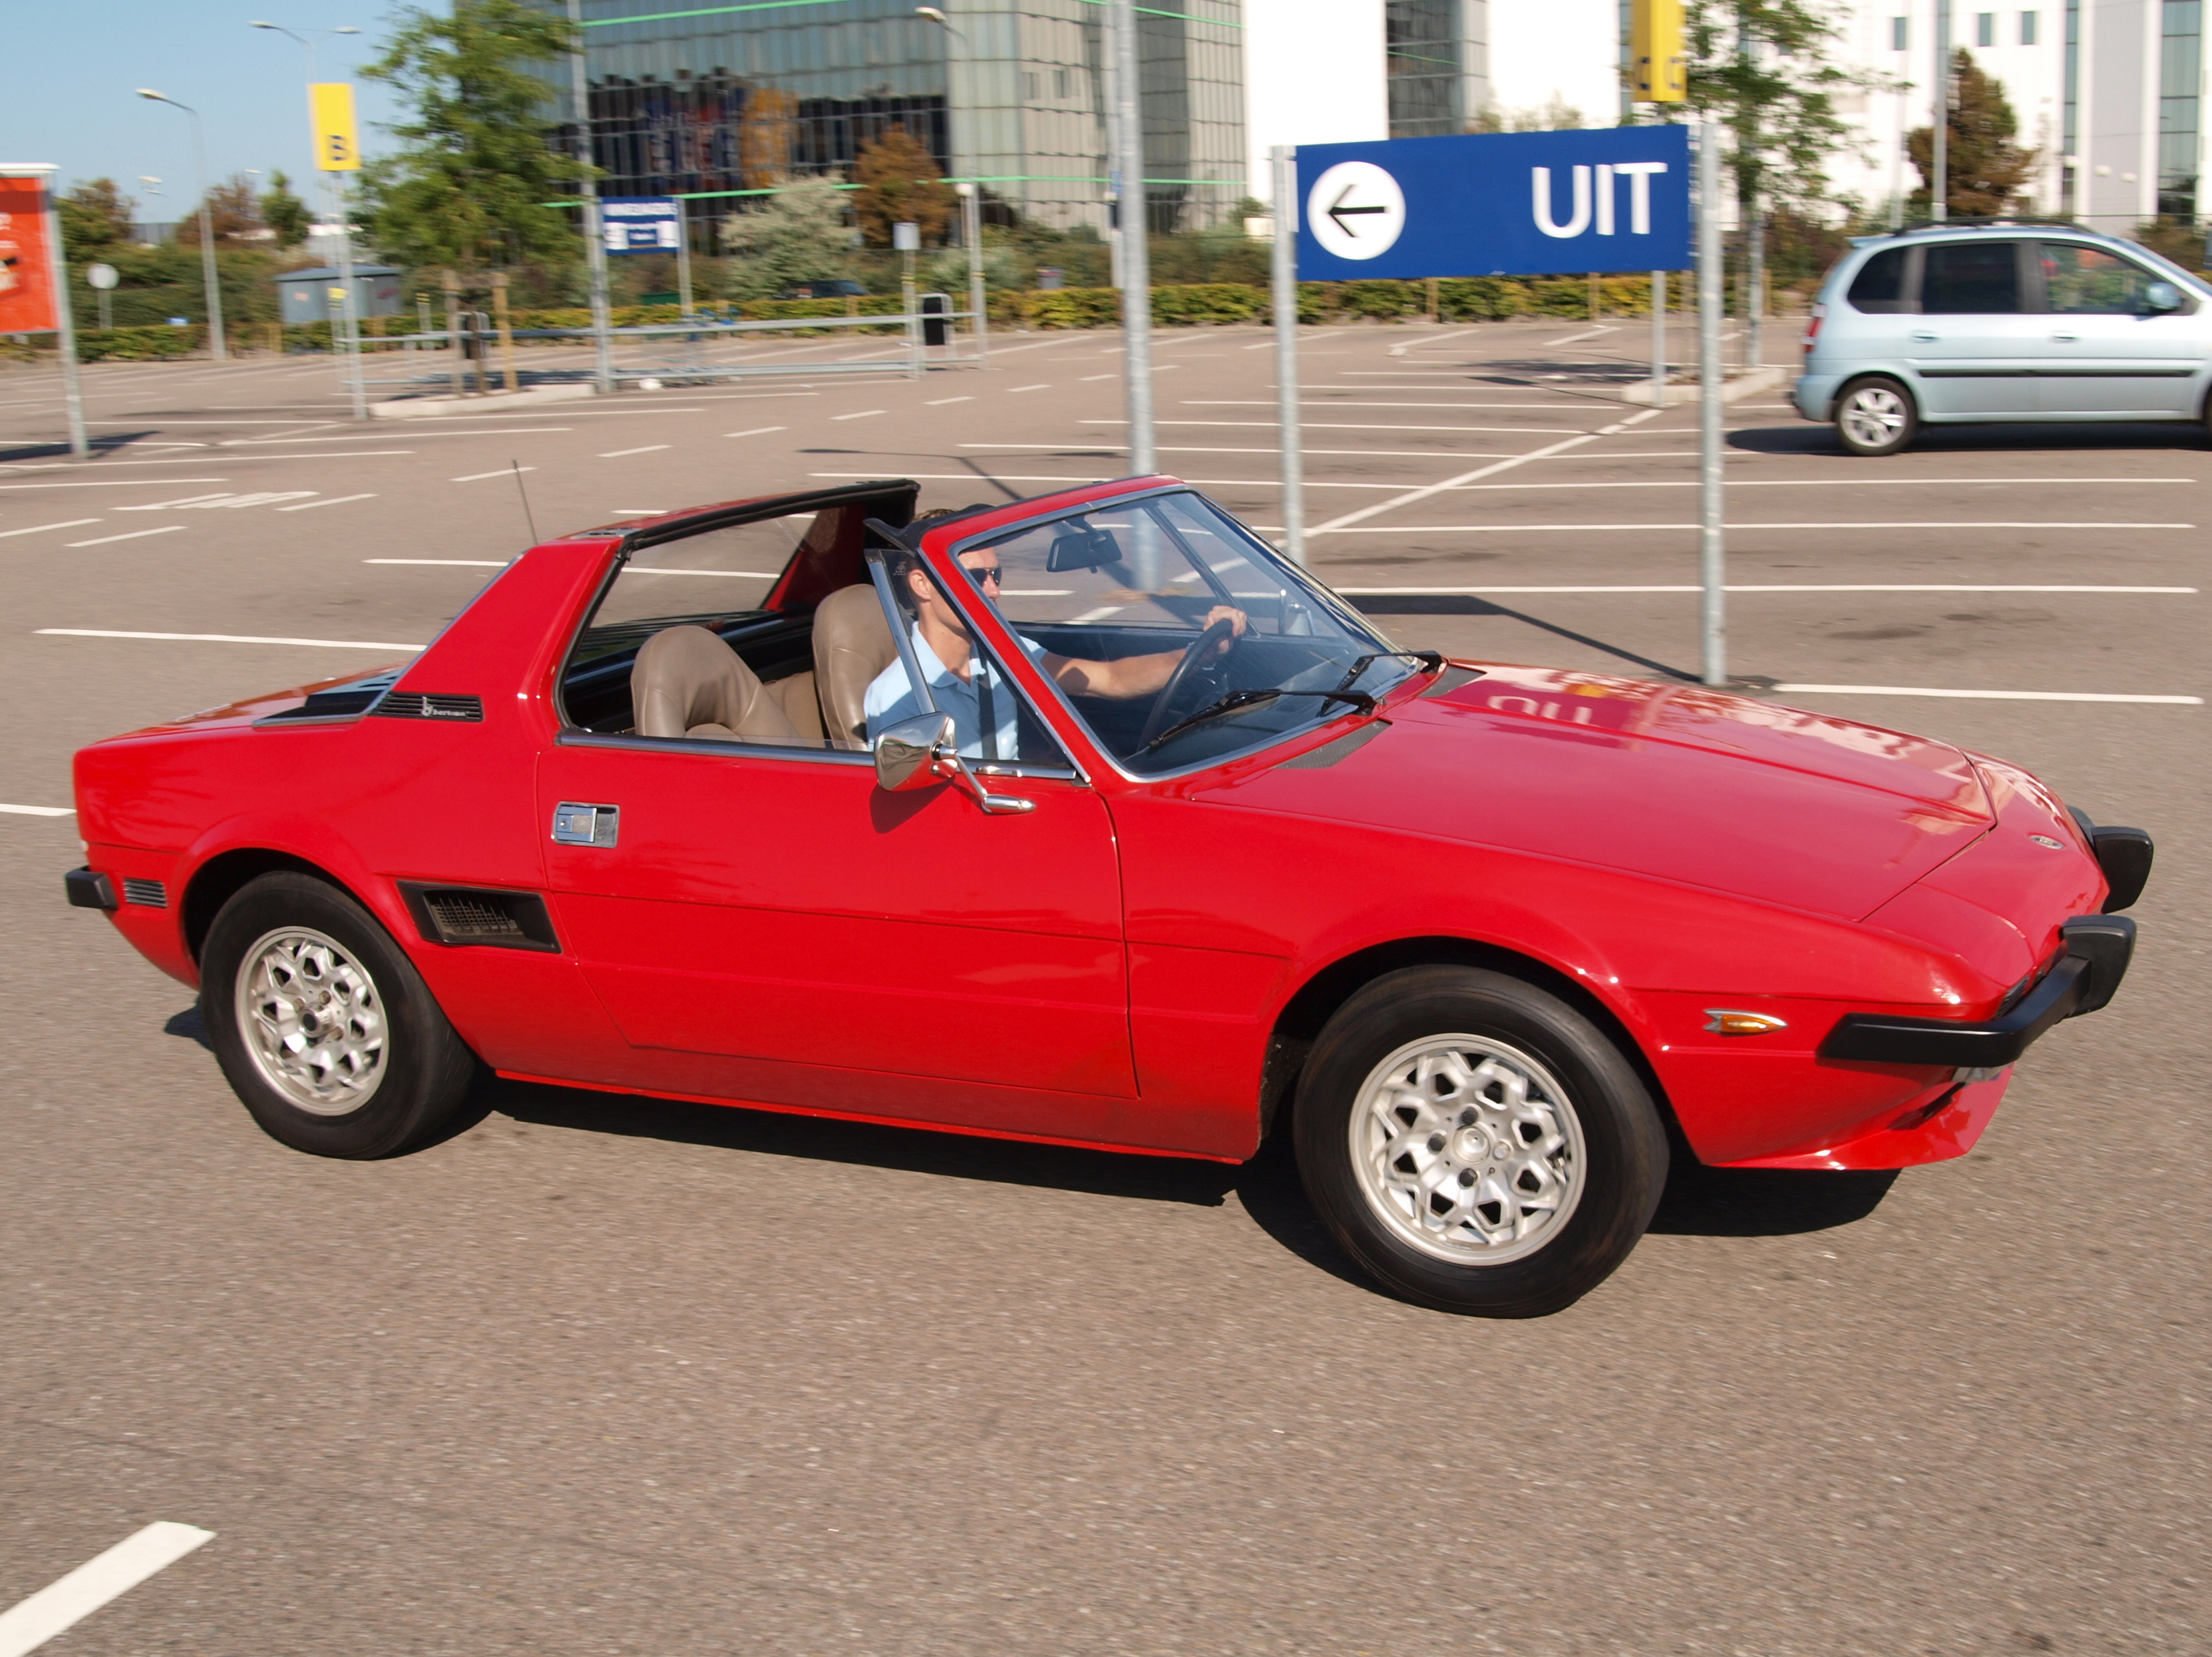 pin fiat x19 related images451 to 500 zuoda images on